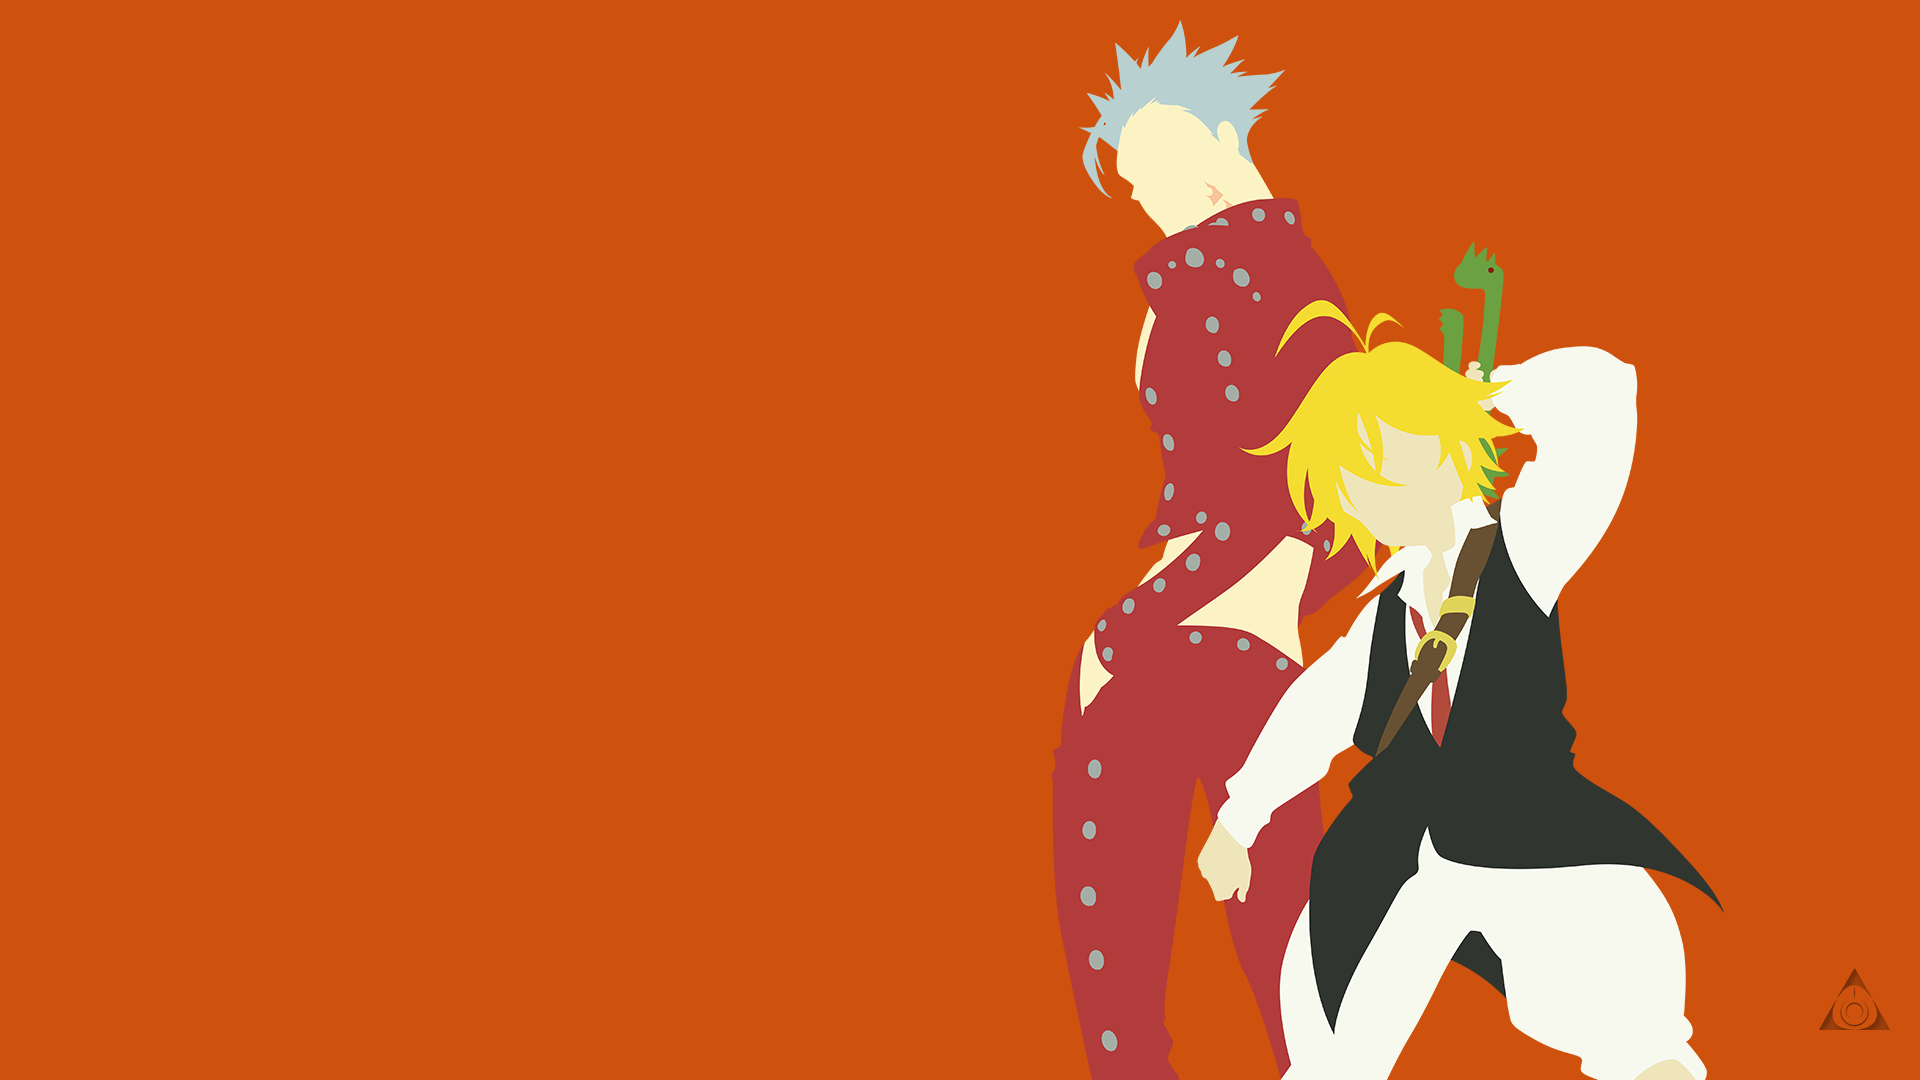 Meliodas and ban hd wallpaper background image 1920x1080 id 714660 wallpaper abyss - Ban seven deadly sins wallpaper ...